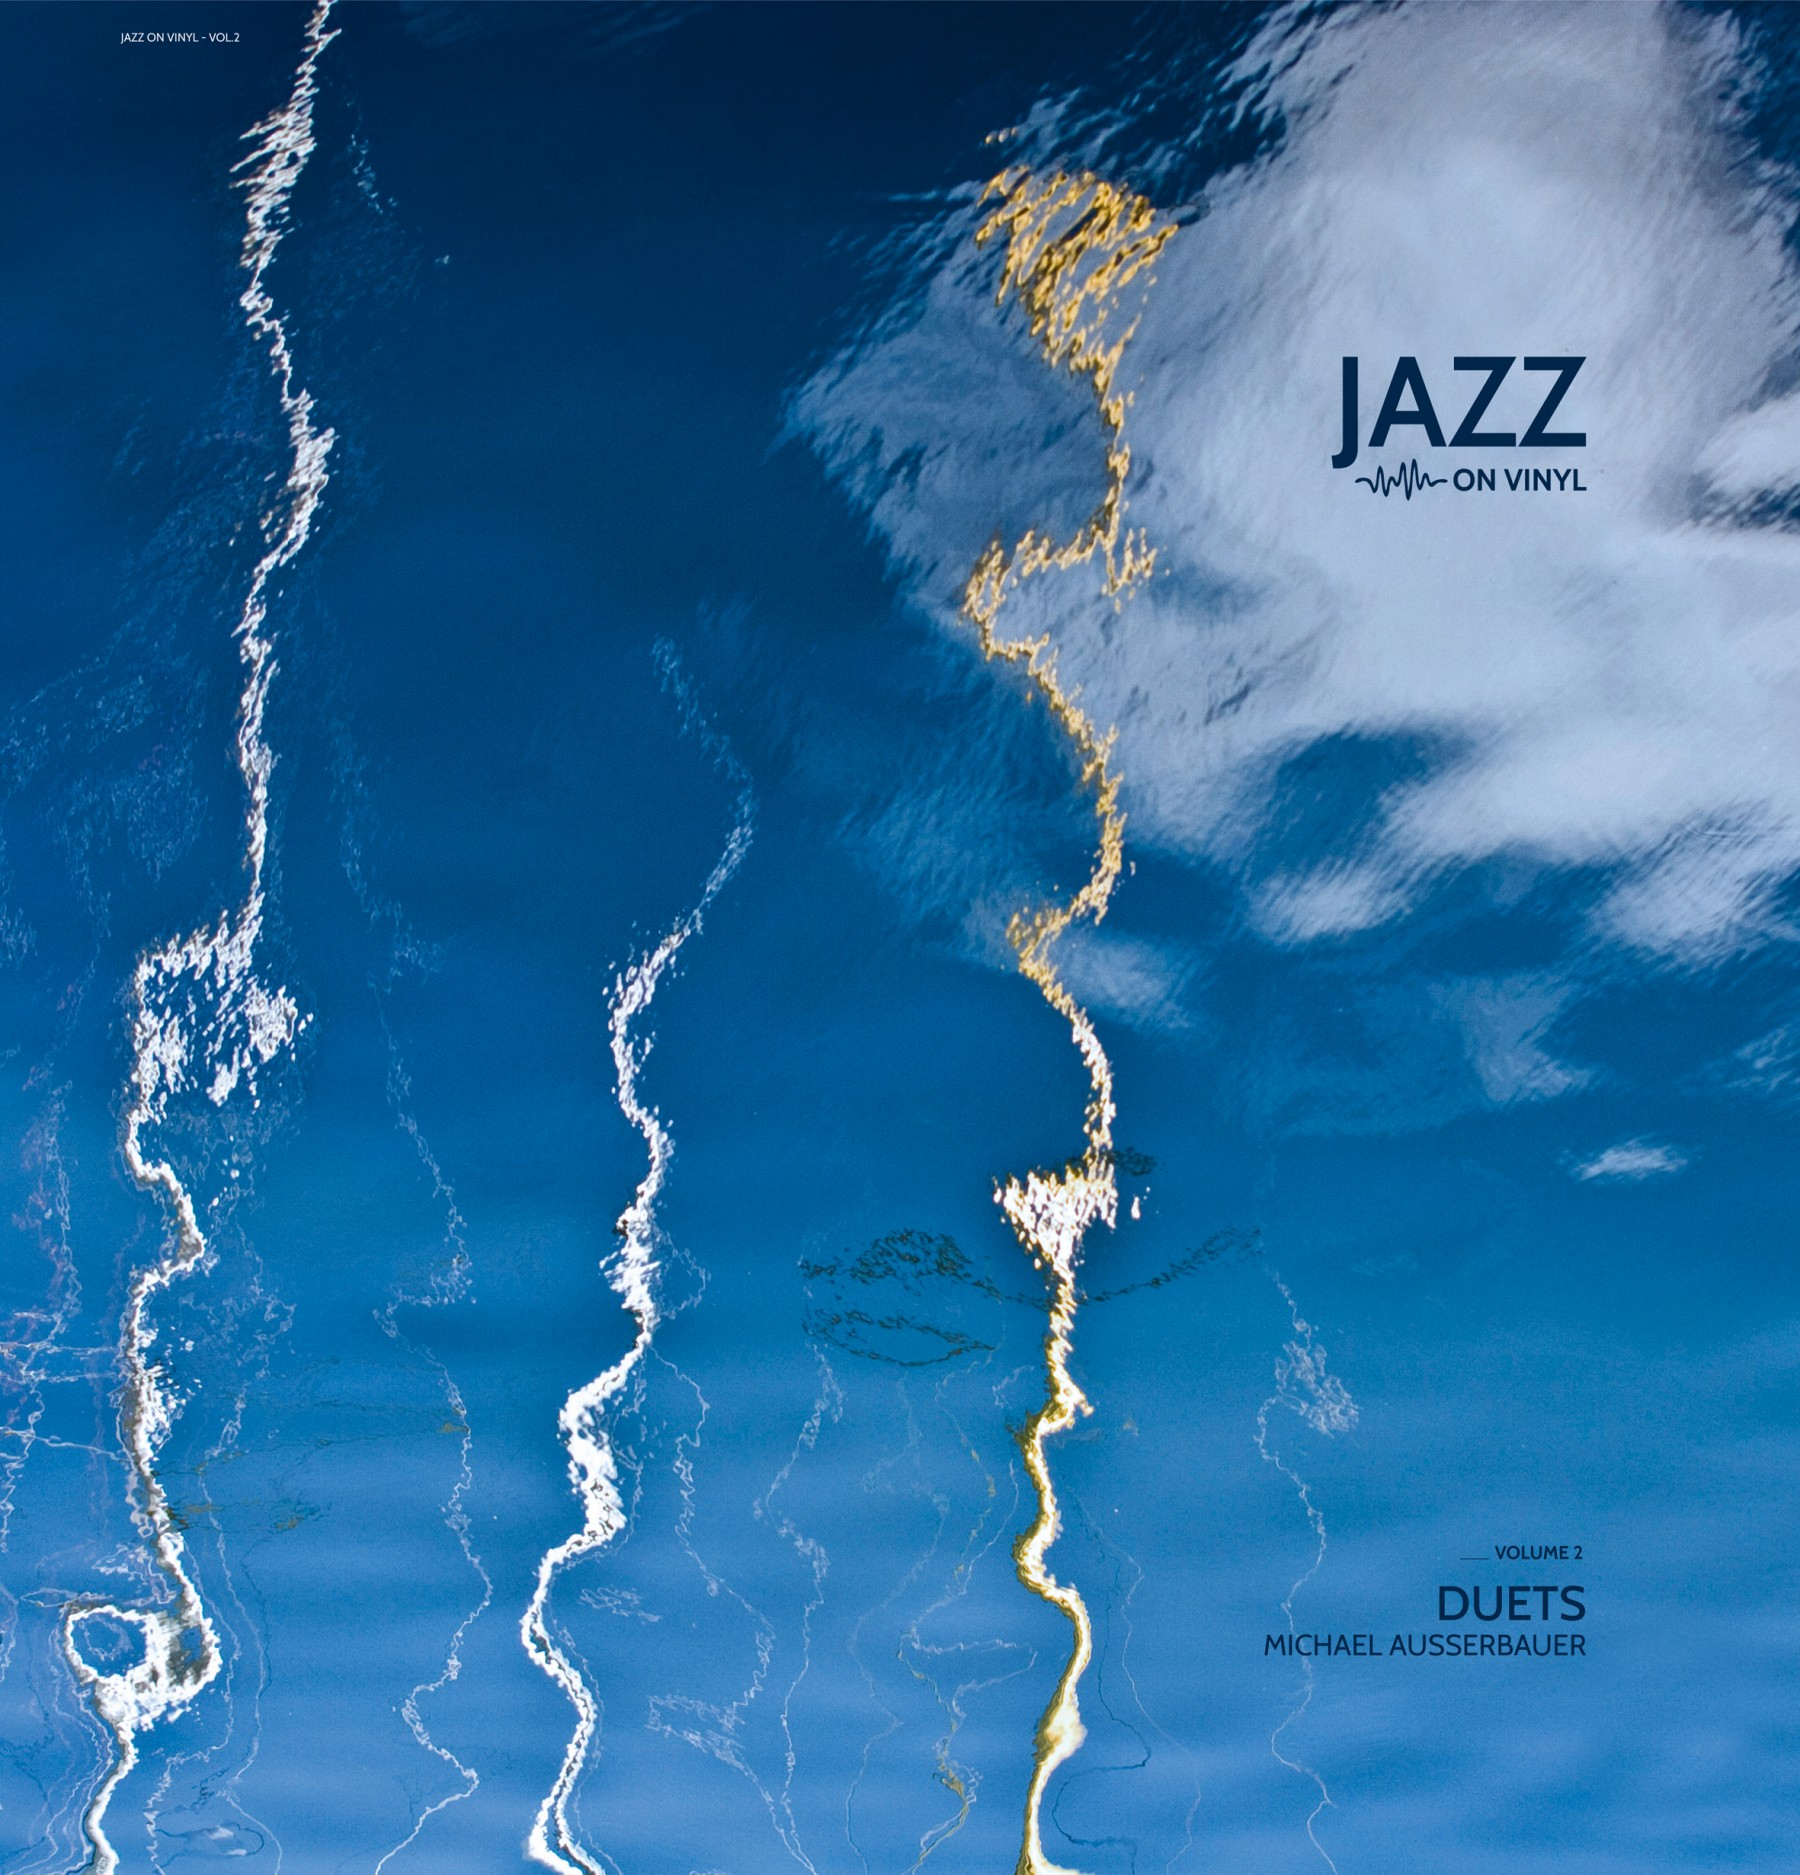 JAZZ ON VINYL - VOL.2 Duets Michael Ausserbauer